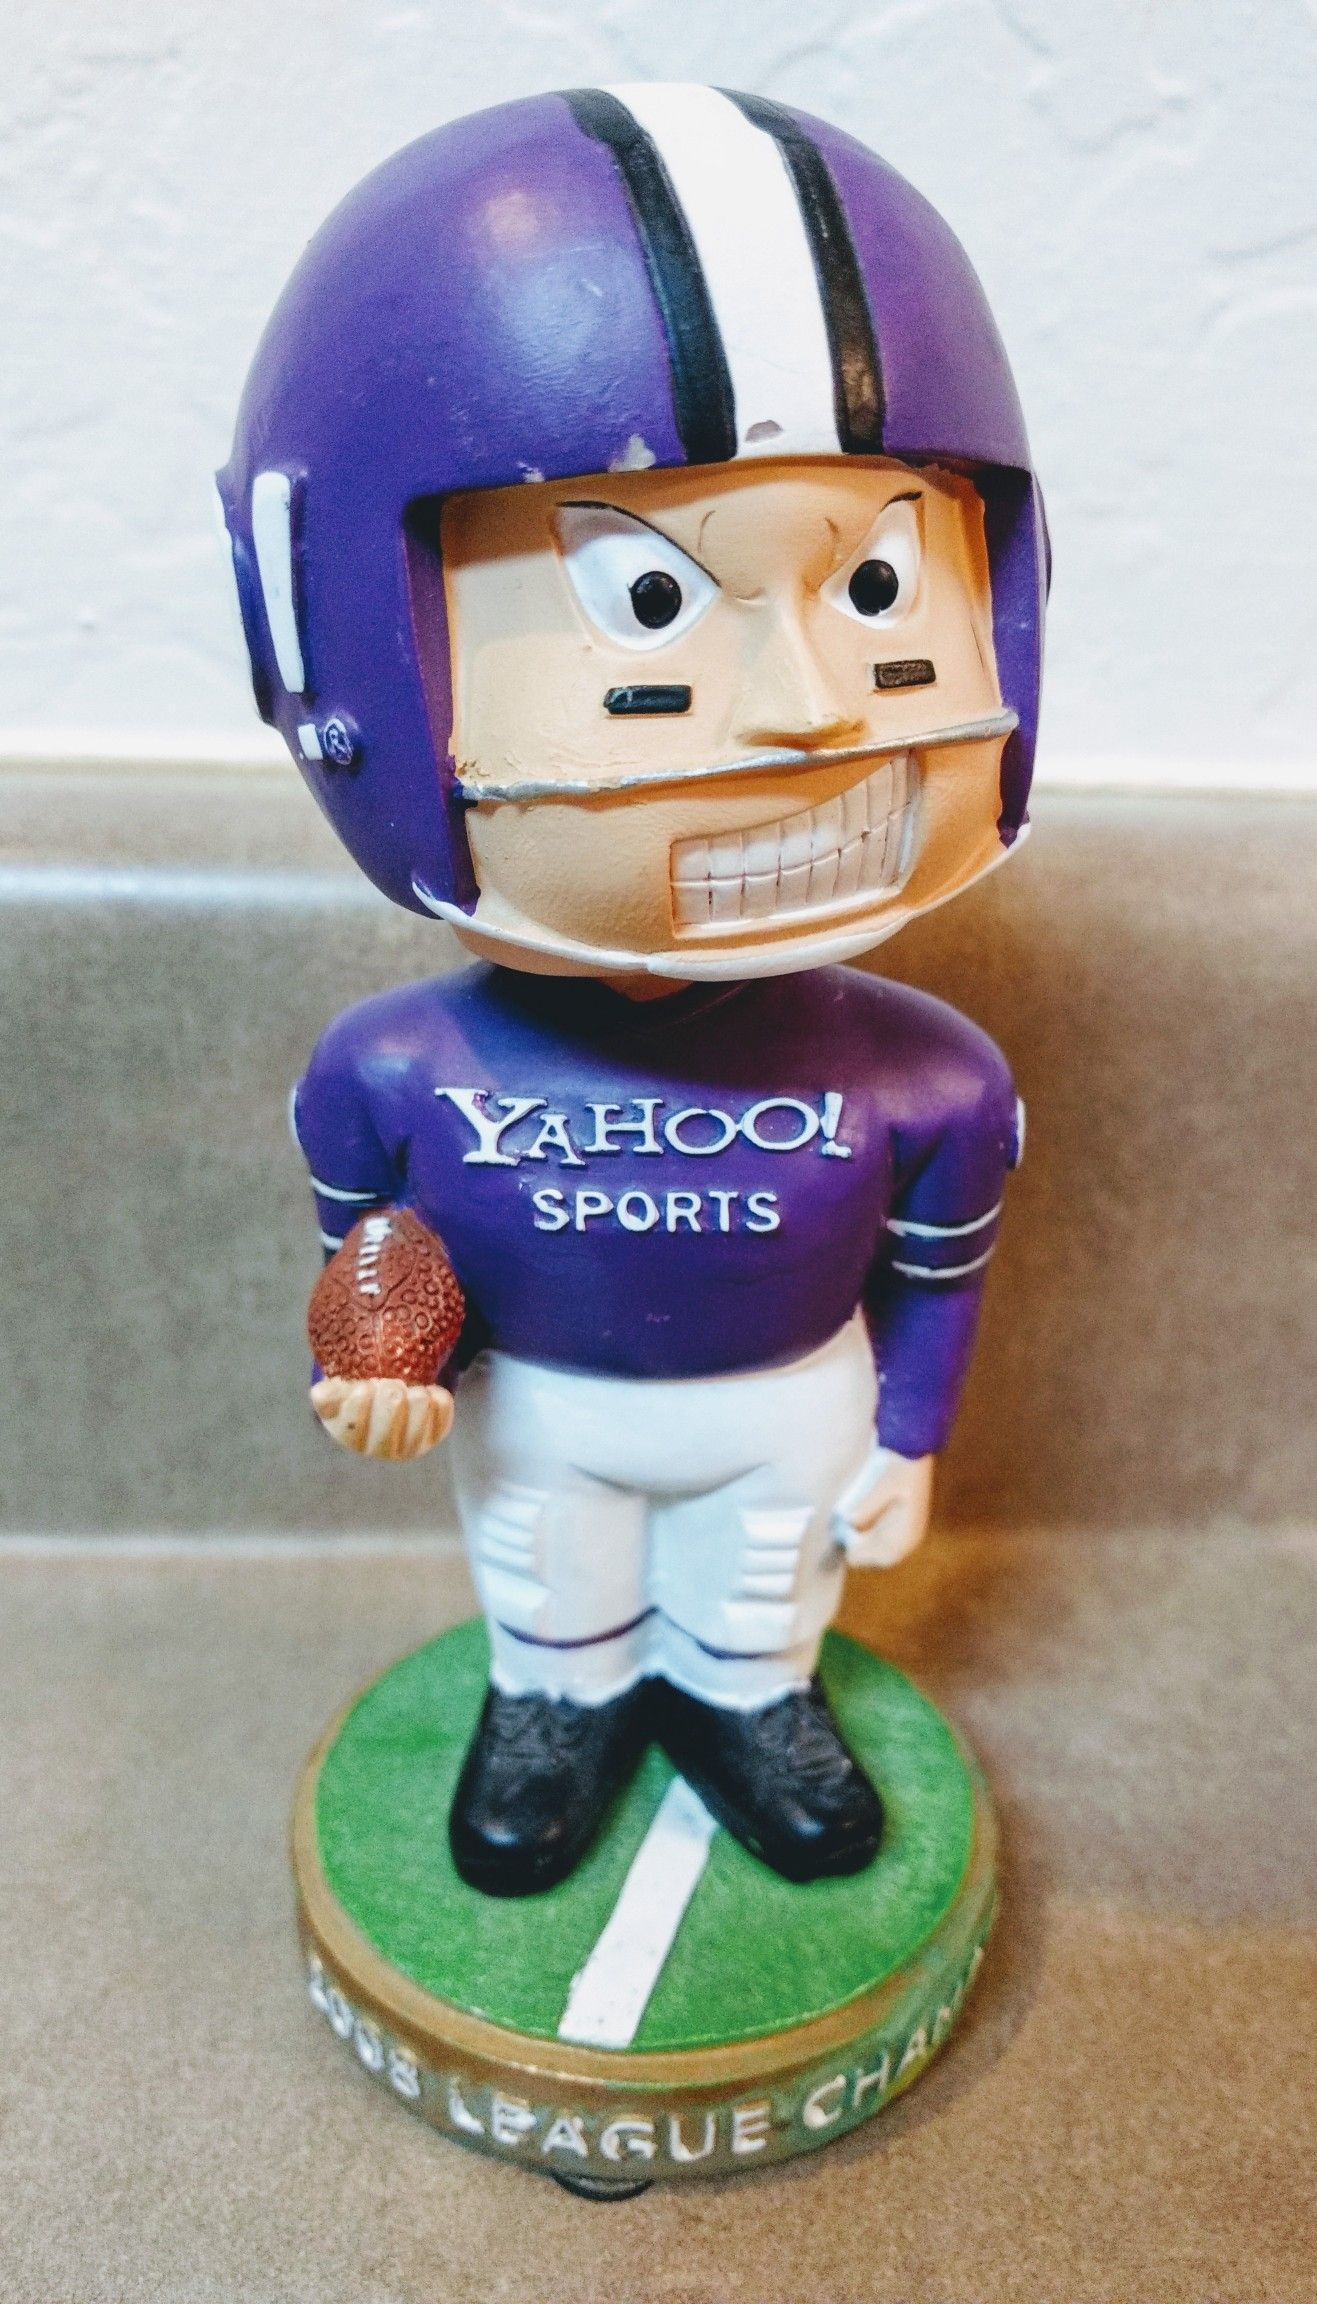 2008 Yahoo Fantasy Football Winner Award Bobblehead